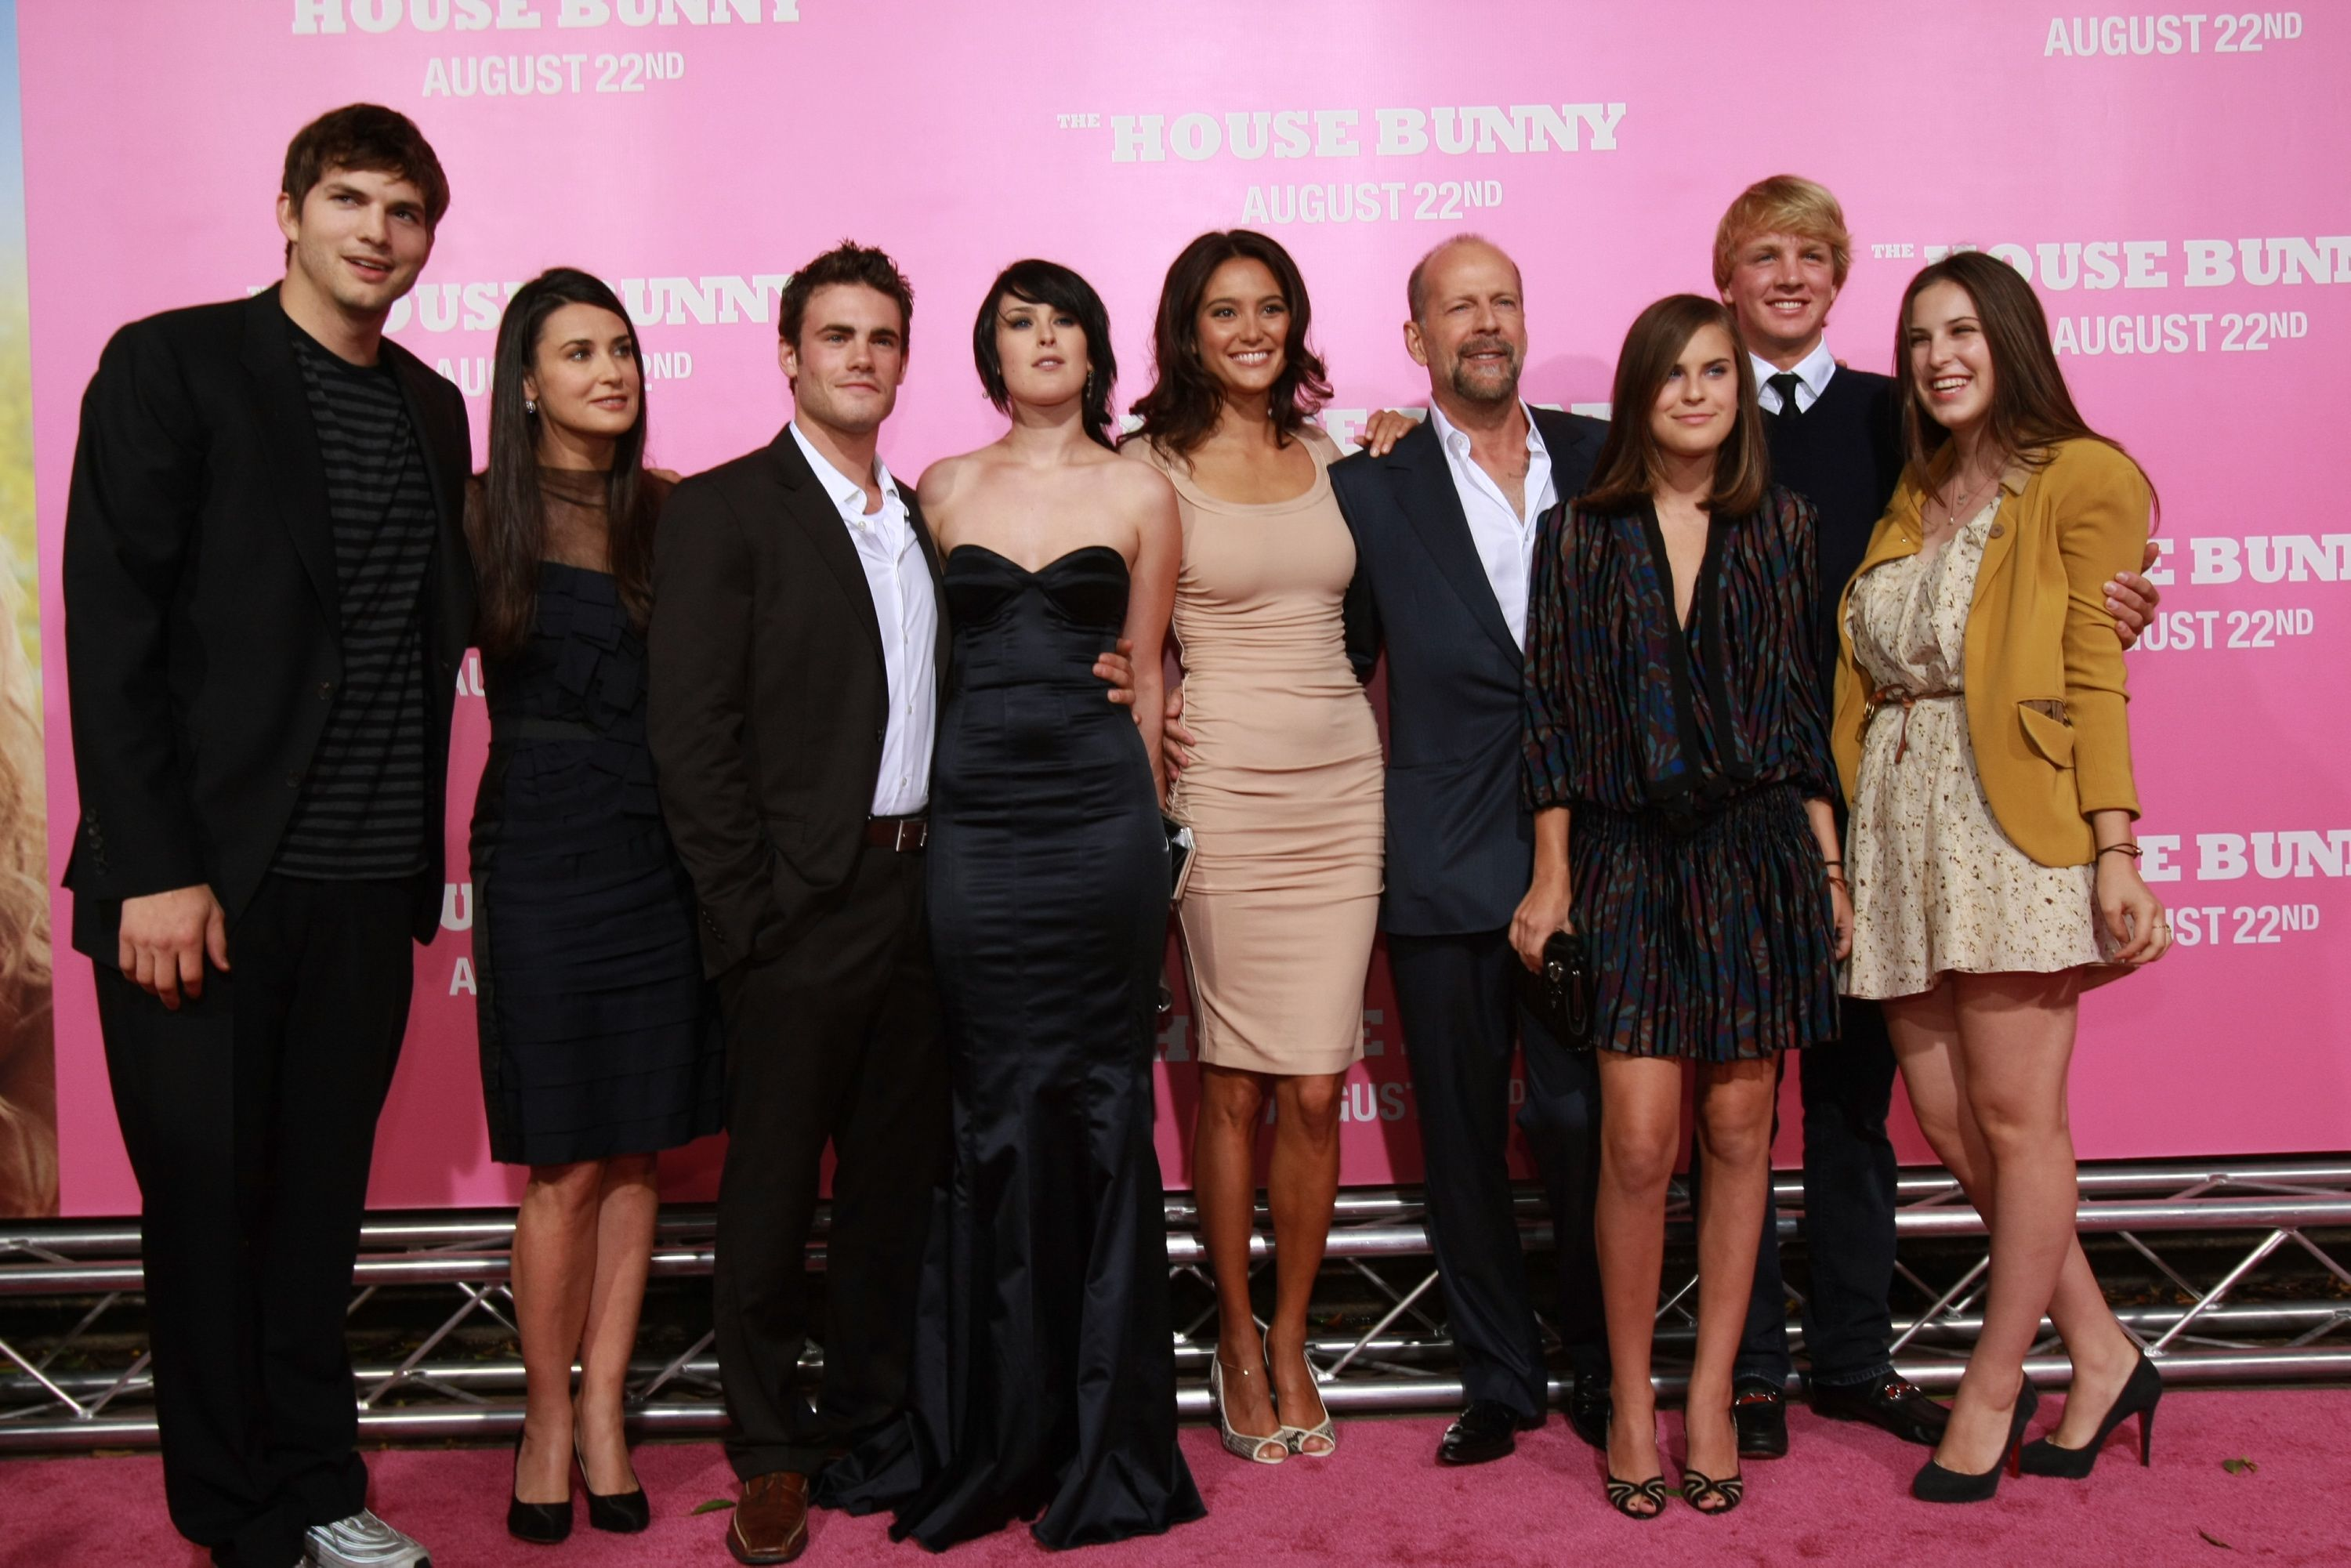 """Ashton Kutcher, Demi Moore, Michah Alberti, Rumer Willis, Emma Heming, Bruce Willis, Tallulah Willis, Scout Willis and a blonde male friend attend the premiere of  """"The House Bunny"""" at the Mann Village Theatre in Los Angeles on Aug. 20, 2008."""